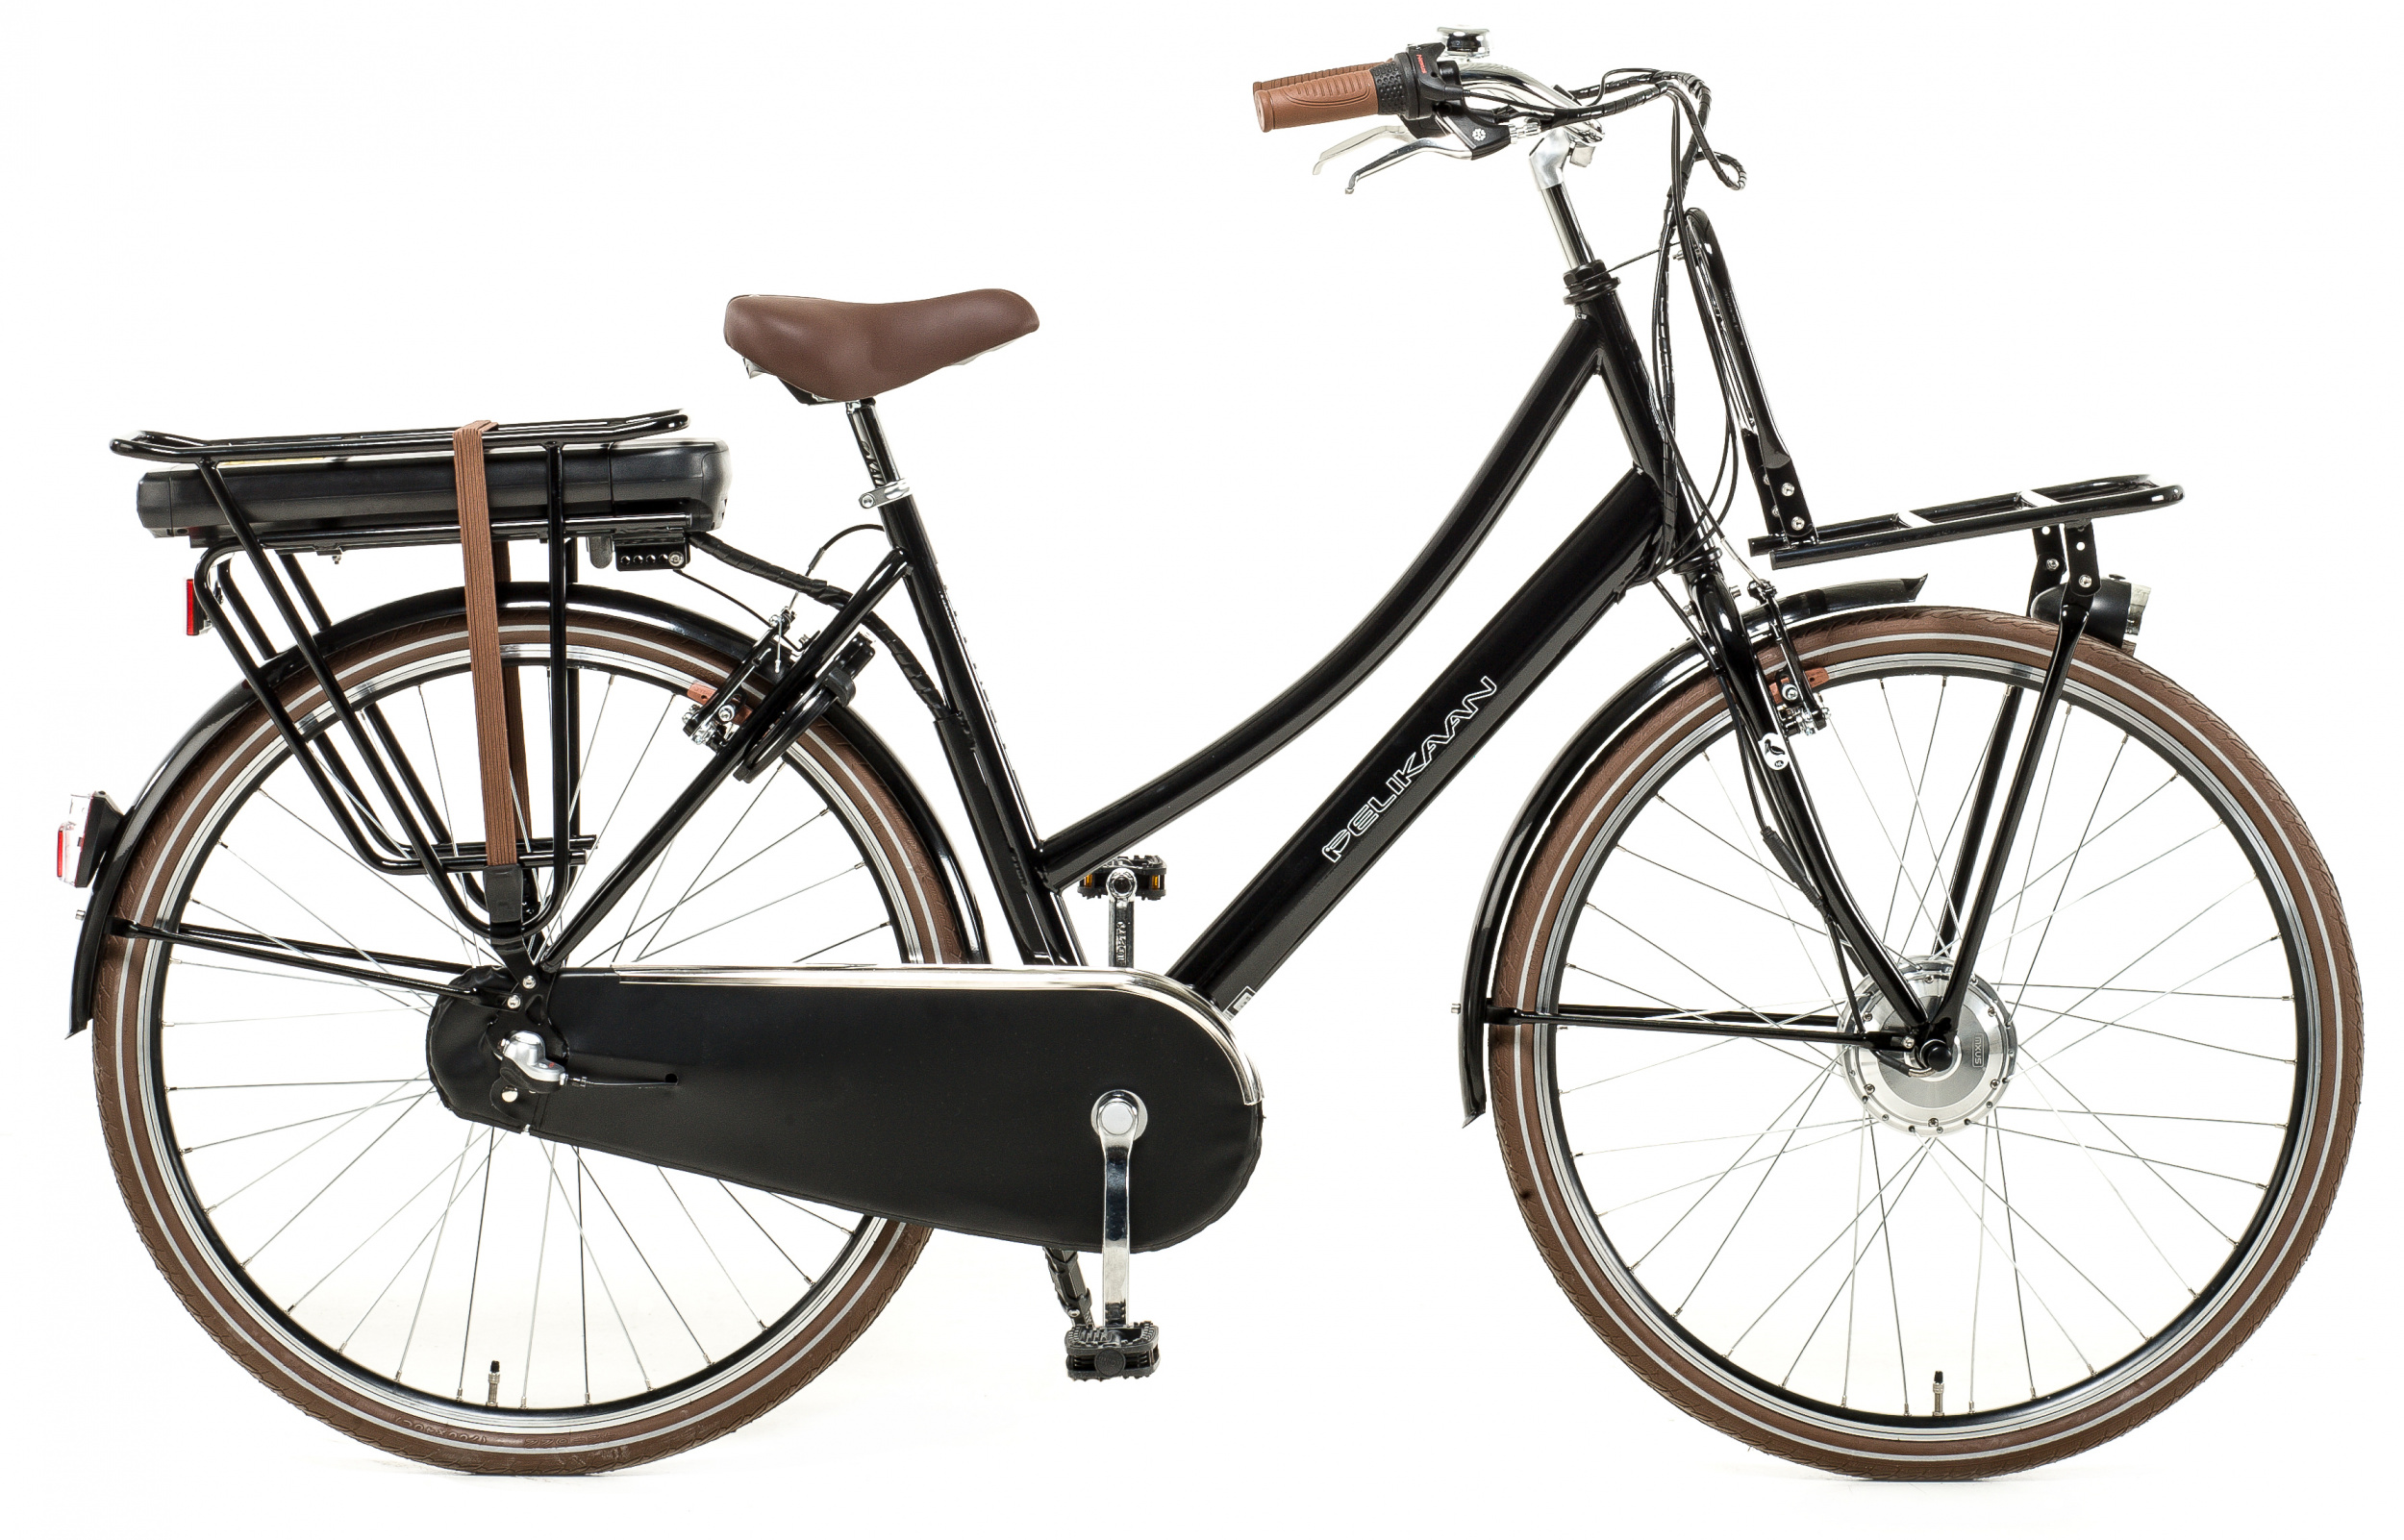 E-Bike Hollandrad Damen bei ganio.de